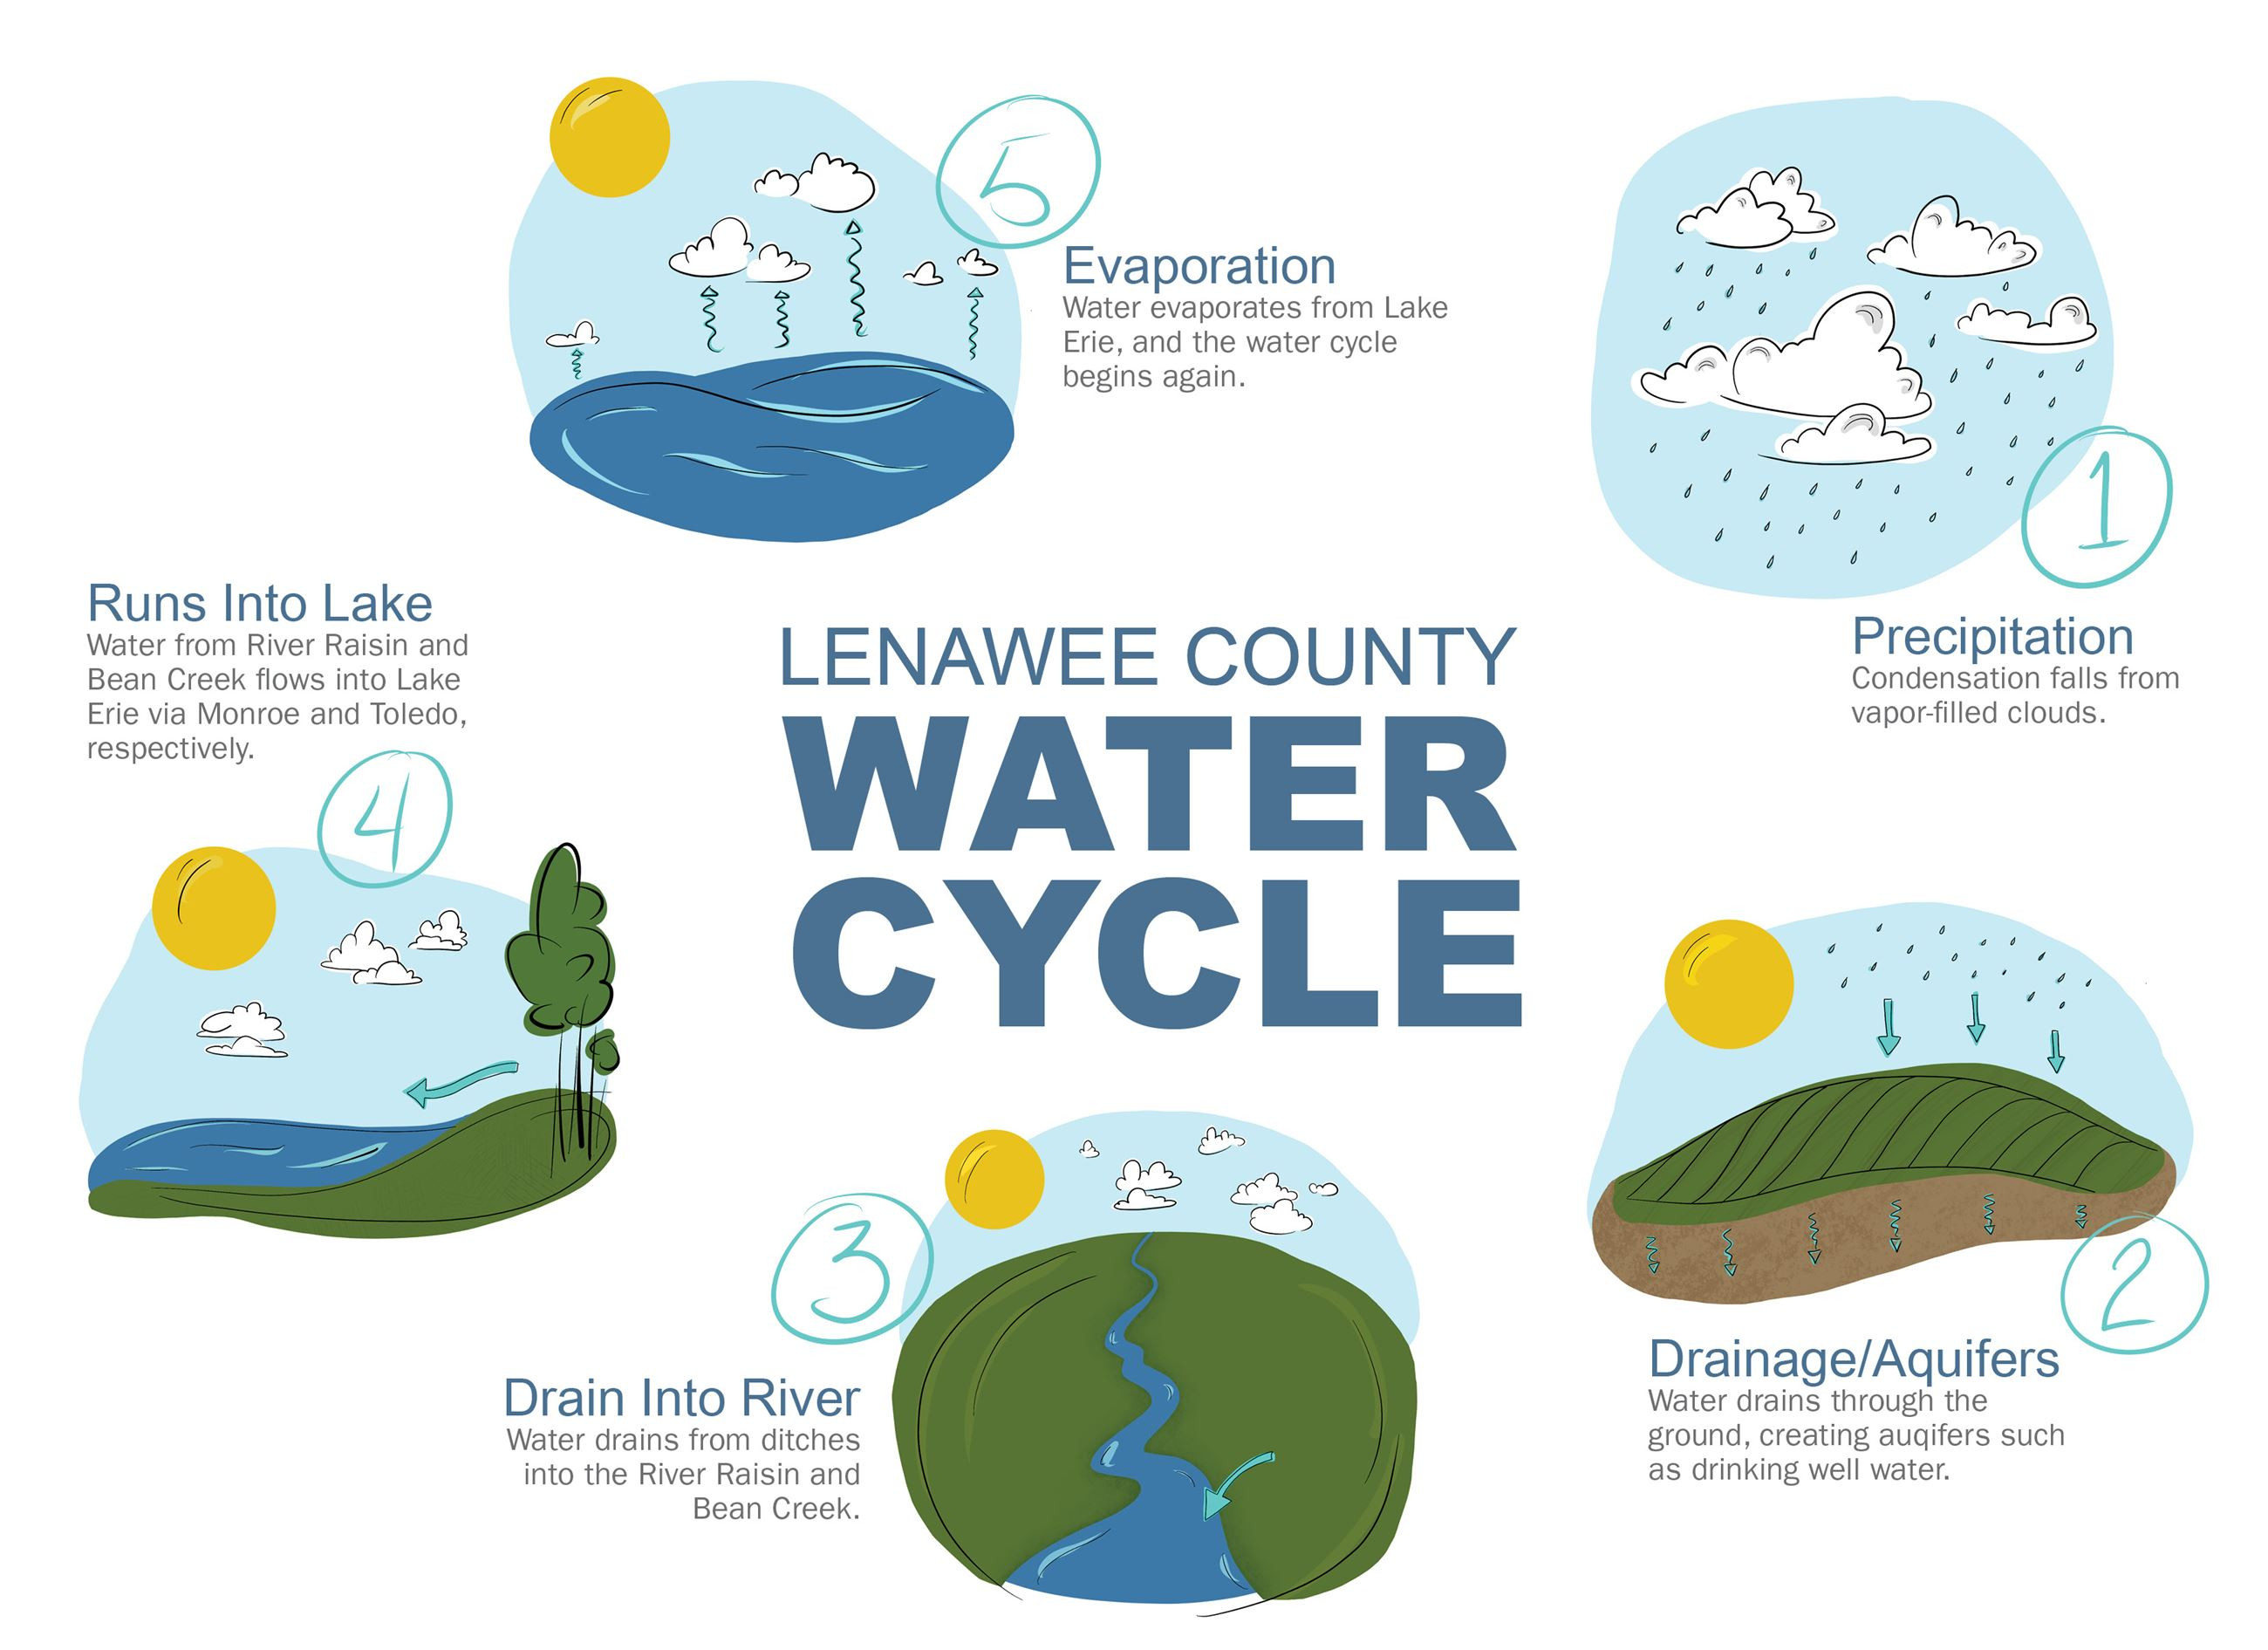 illustration of water cycle in Lenawee County